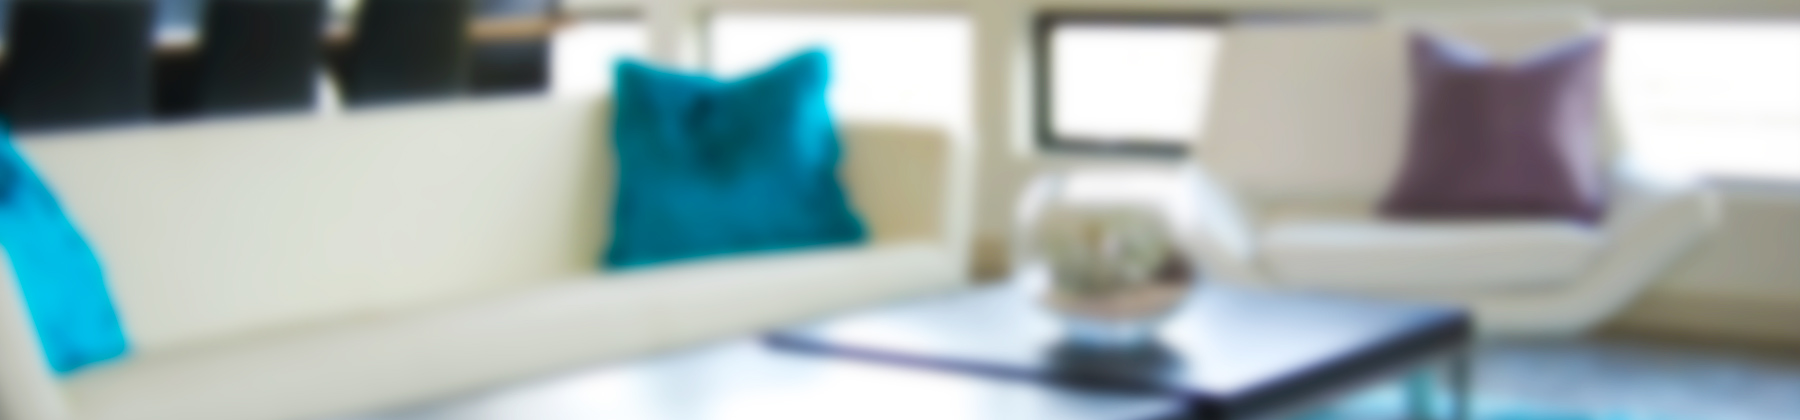 furnishing-banner-bg